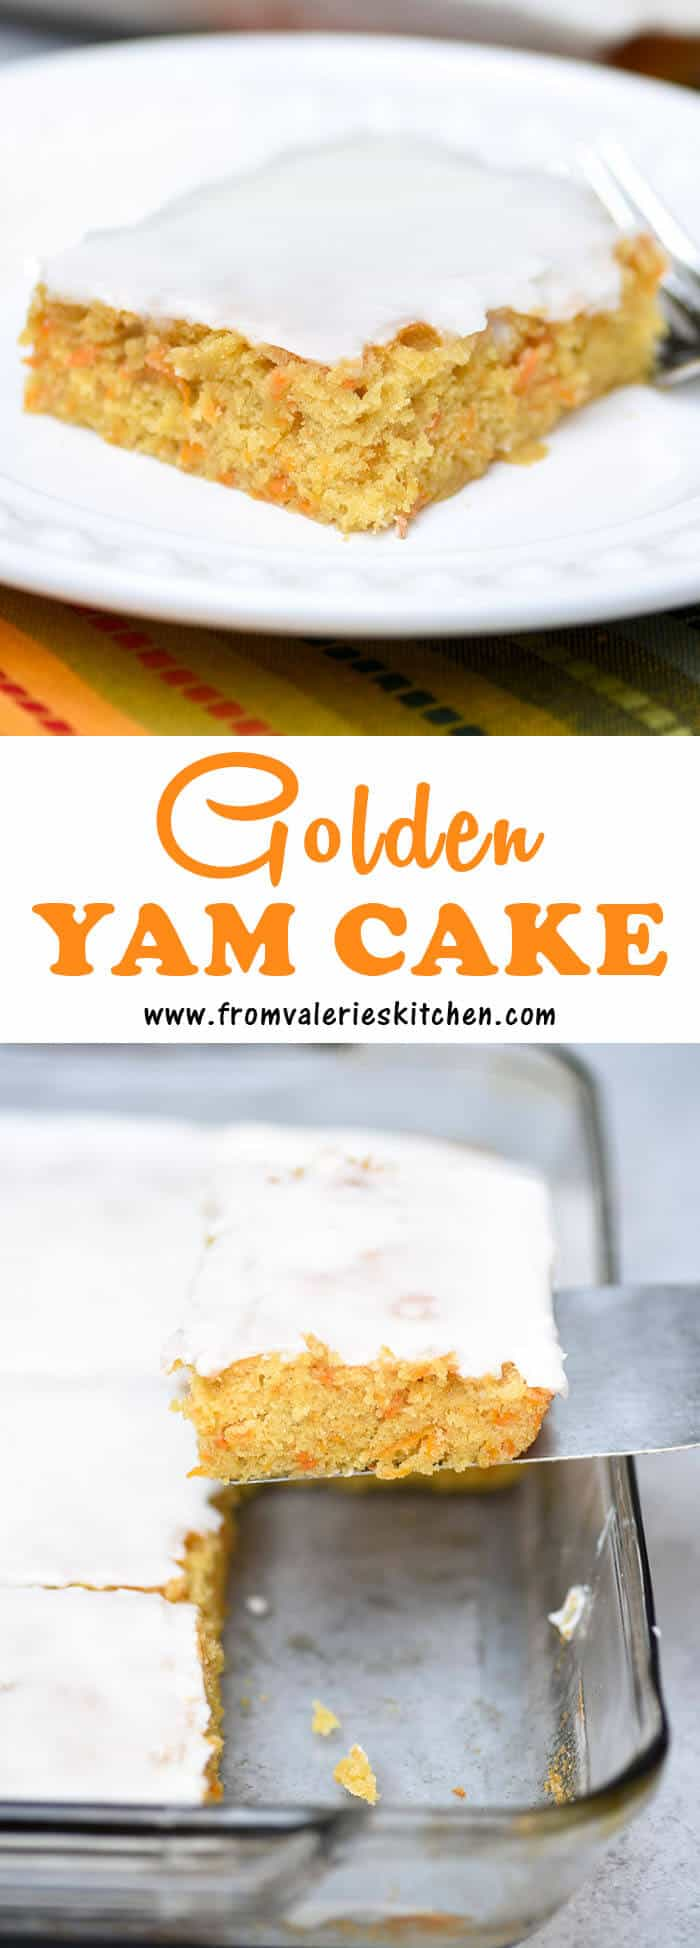 This Golden Yam Cake has an extremely moist and delicate texture and is topped with a simple powdered sugar icing that complements it perfectly.